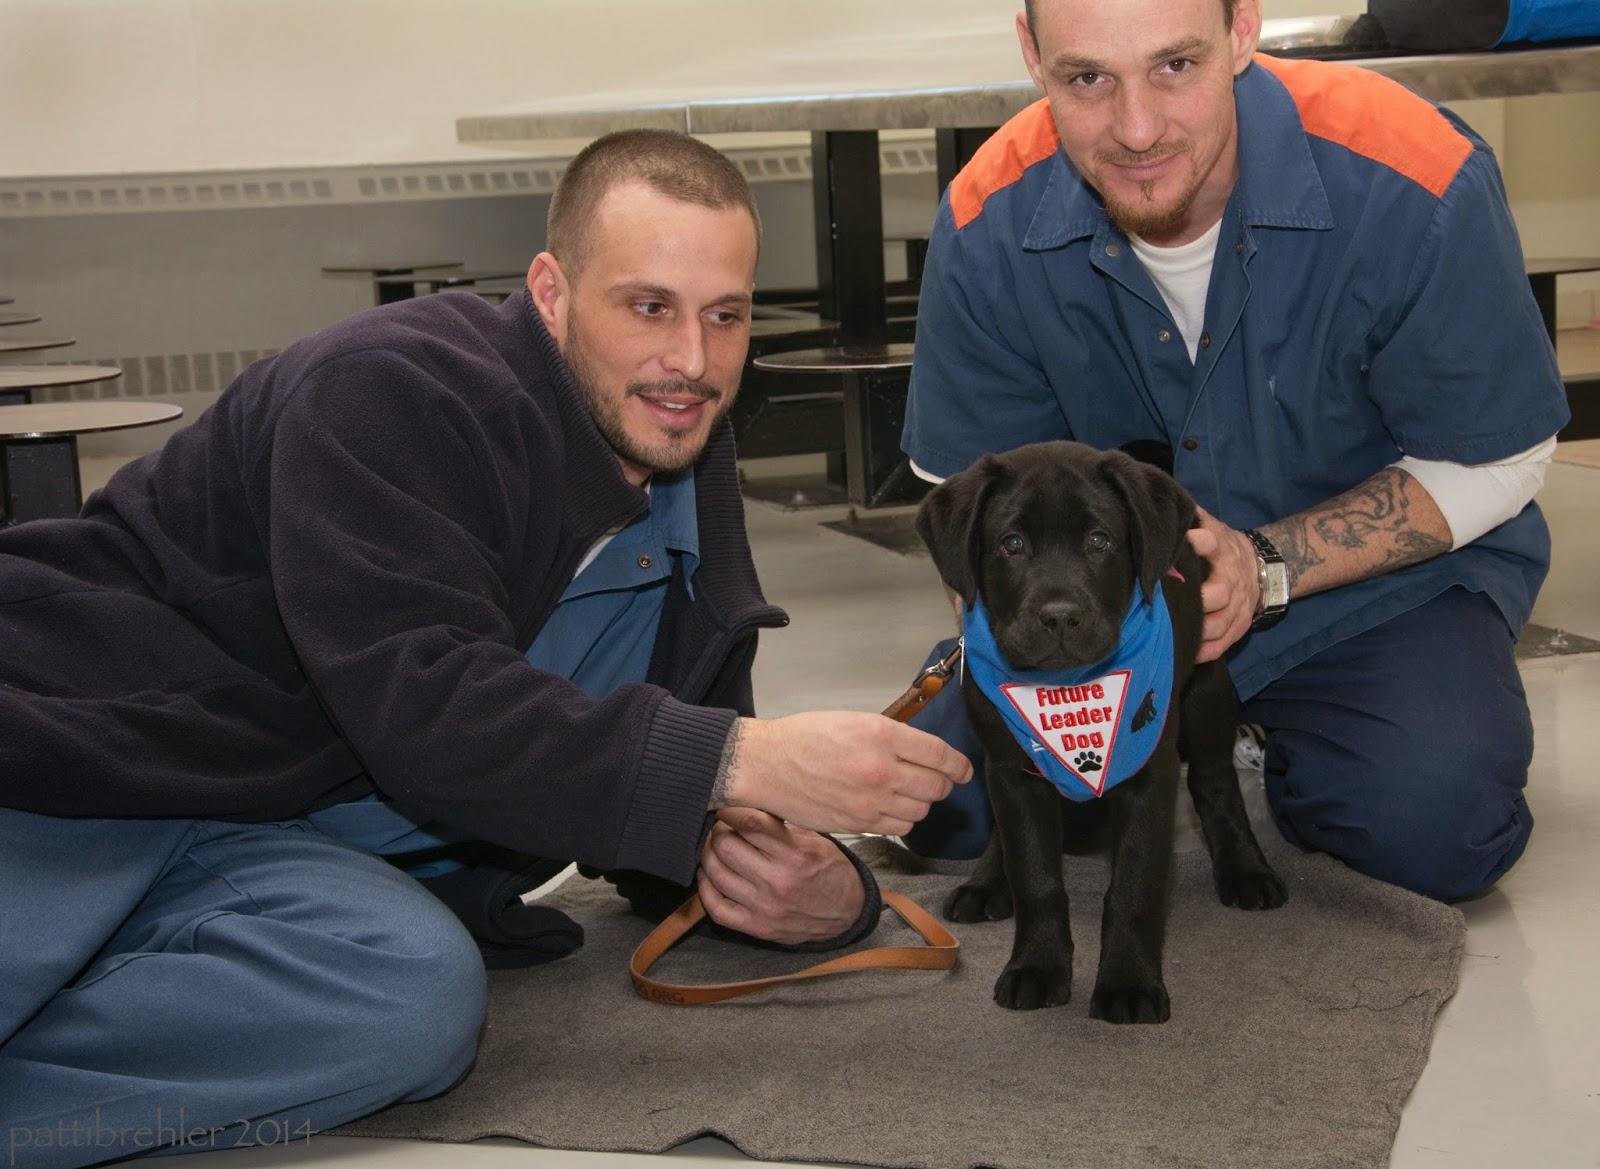 A small black lab is standing on a grey rug on a tile floor, looking intently at the camera. He is wearing a blue bandana with a white triangle with red letters that say Future Leader Dog and a black paw print. Two men are with the pup. One is on the left side and he is lying on his side, propped up on his left elbow. He is wearing blue pants and shirt and a blue jacket. He is holding a brown leash in his left hand and is reaching toward the puppy with his right hand. He is looking at the puppy and smiling. The other man is kneeling behind the puppy on the right and is holding the puppy's back haunches with his hands. He is wearing the blue prison pants and shirt iwth an orange stripe on the sholders. He is looking at the camera and smiling.